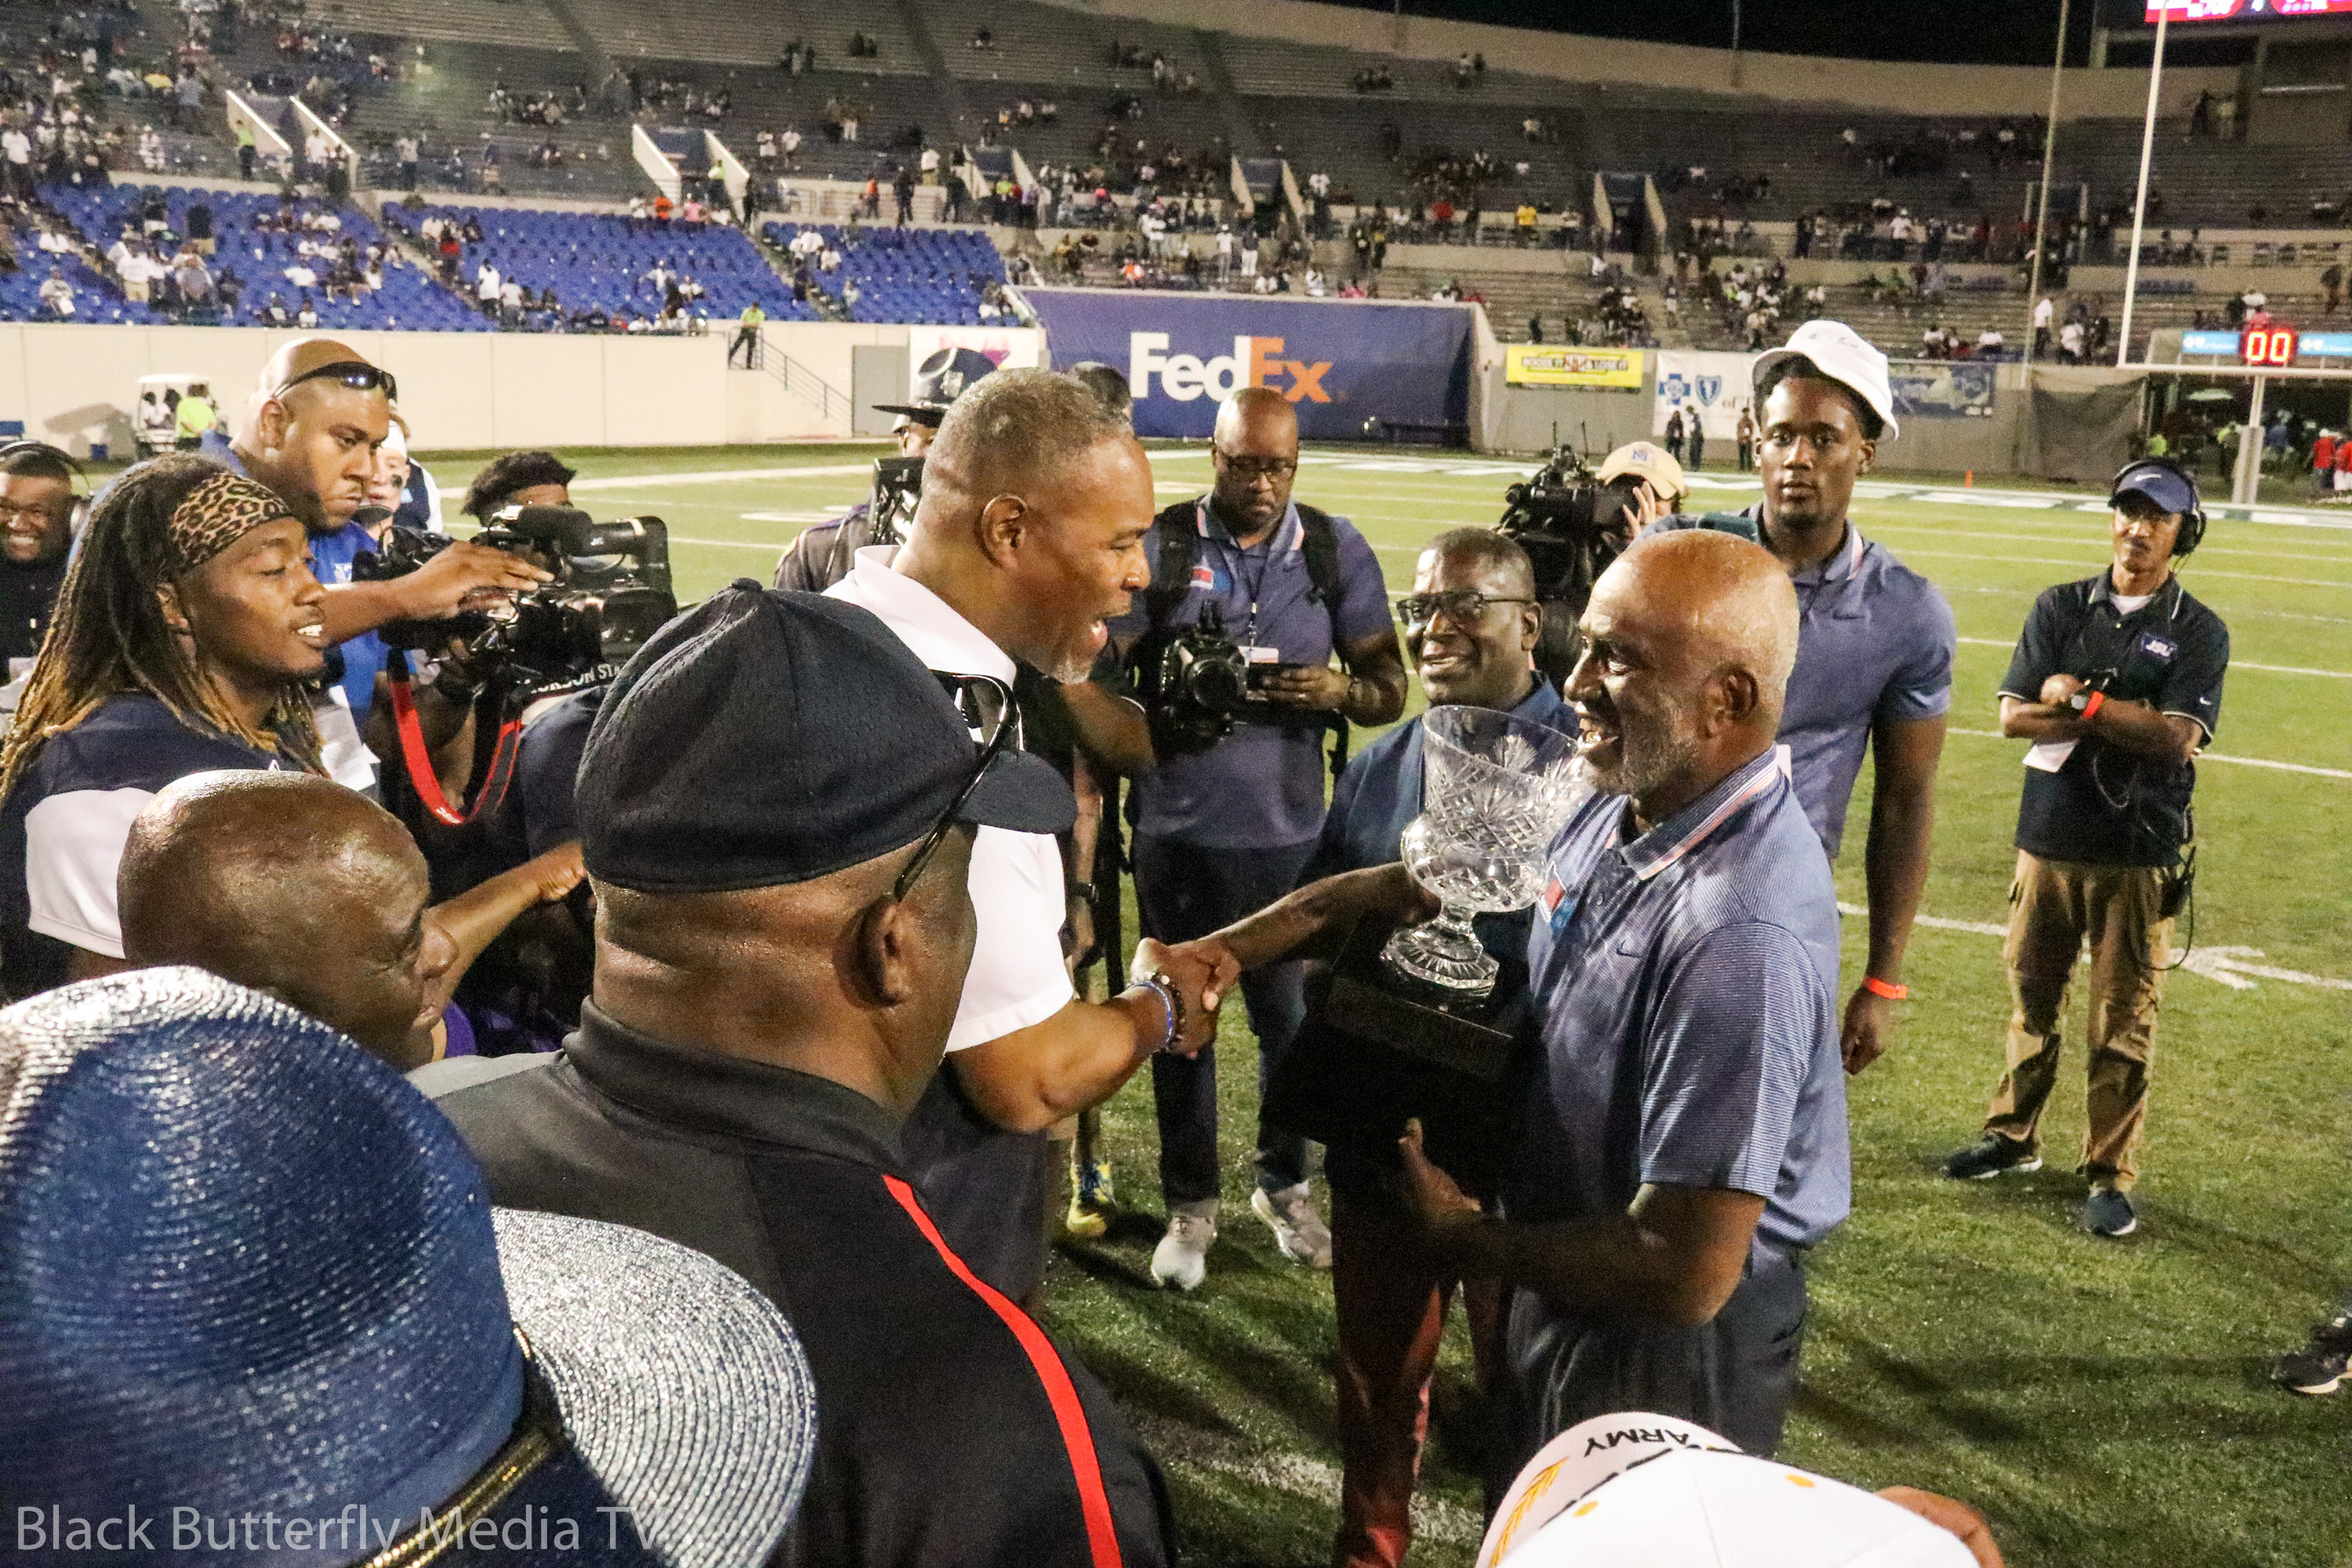 Fred Jones congratulates JSU coach John Hendrick on win